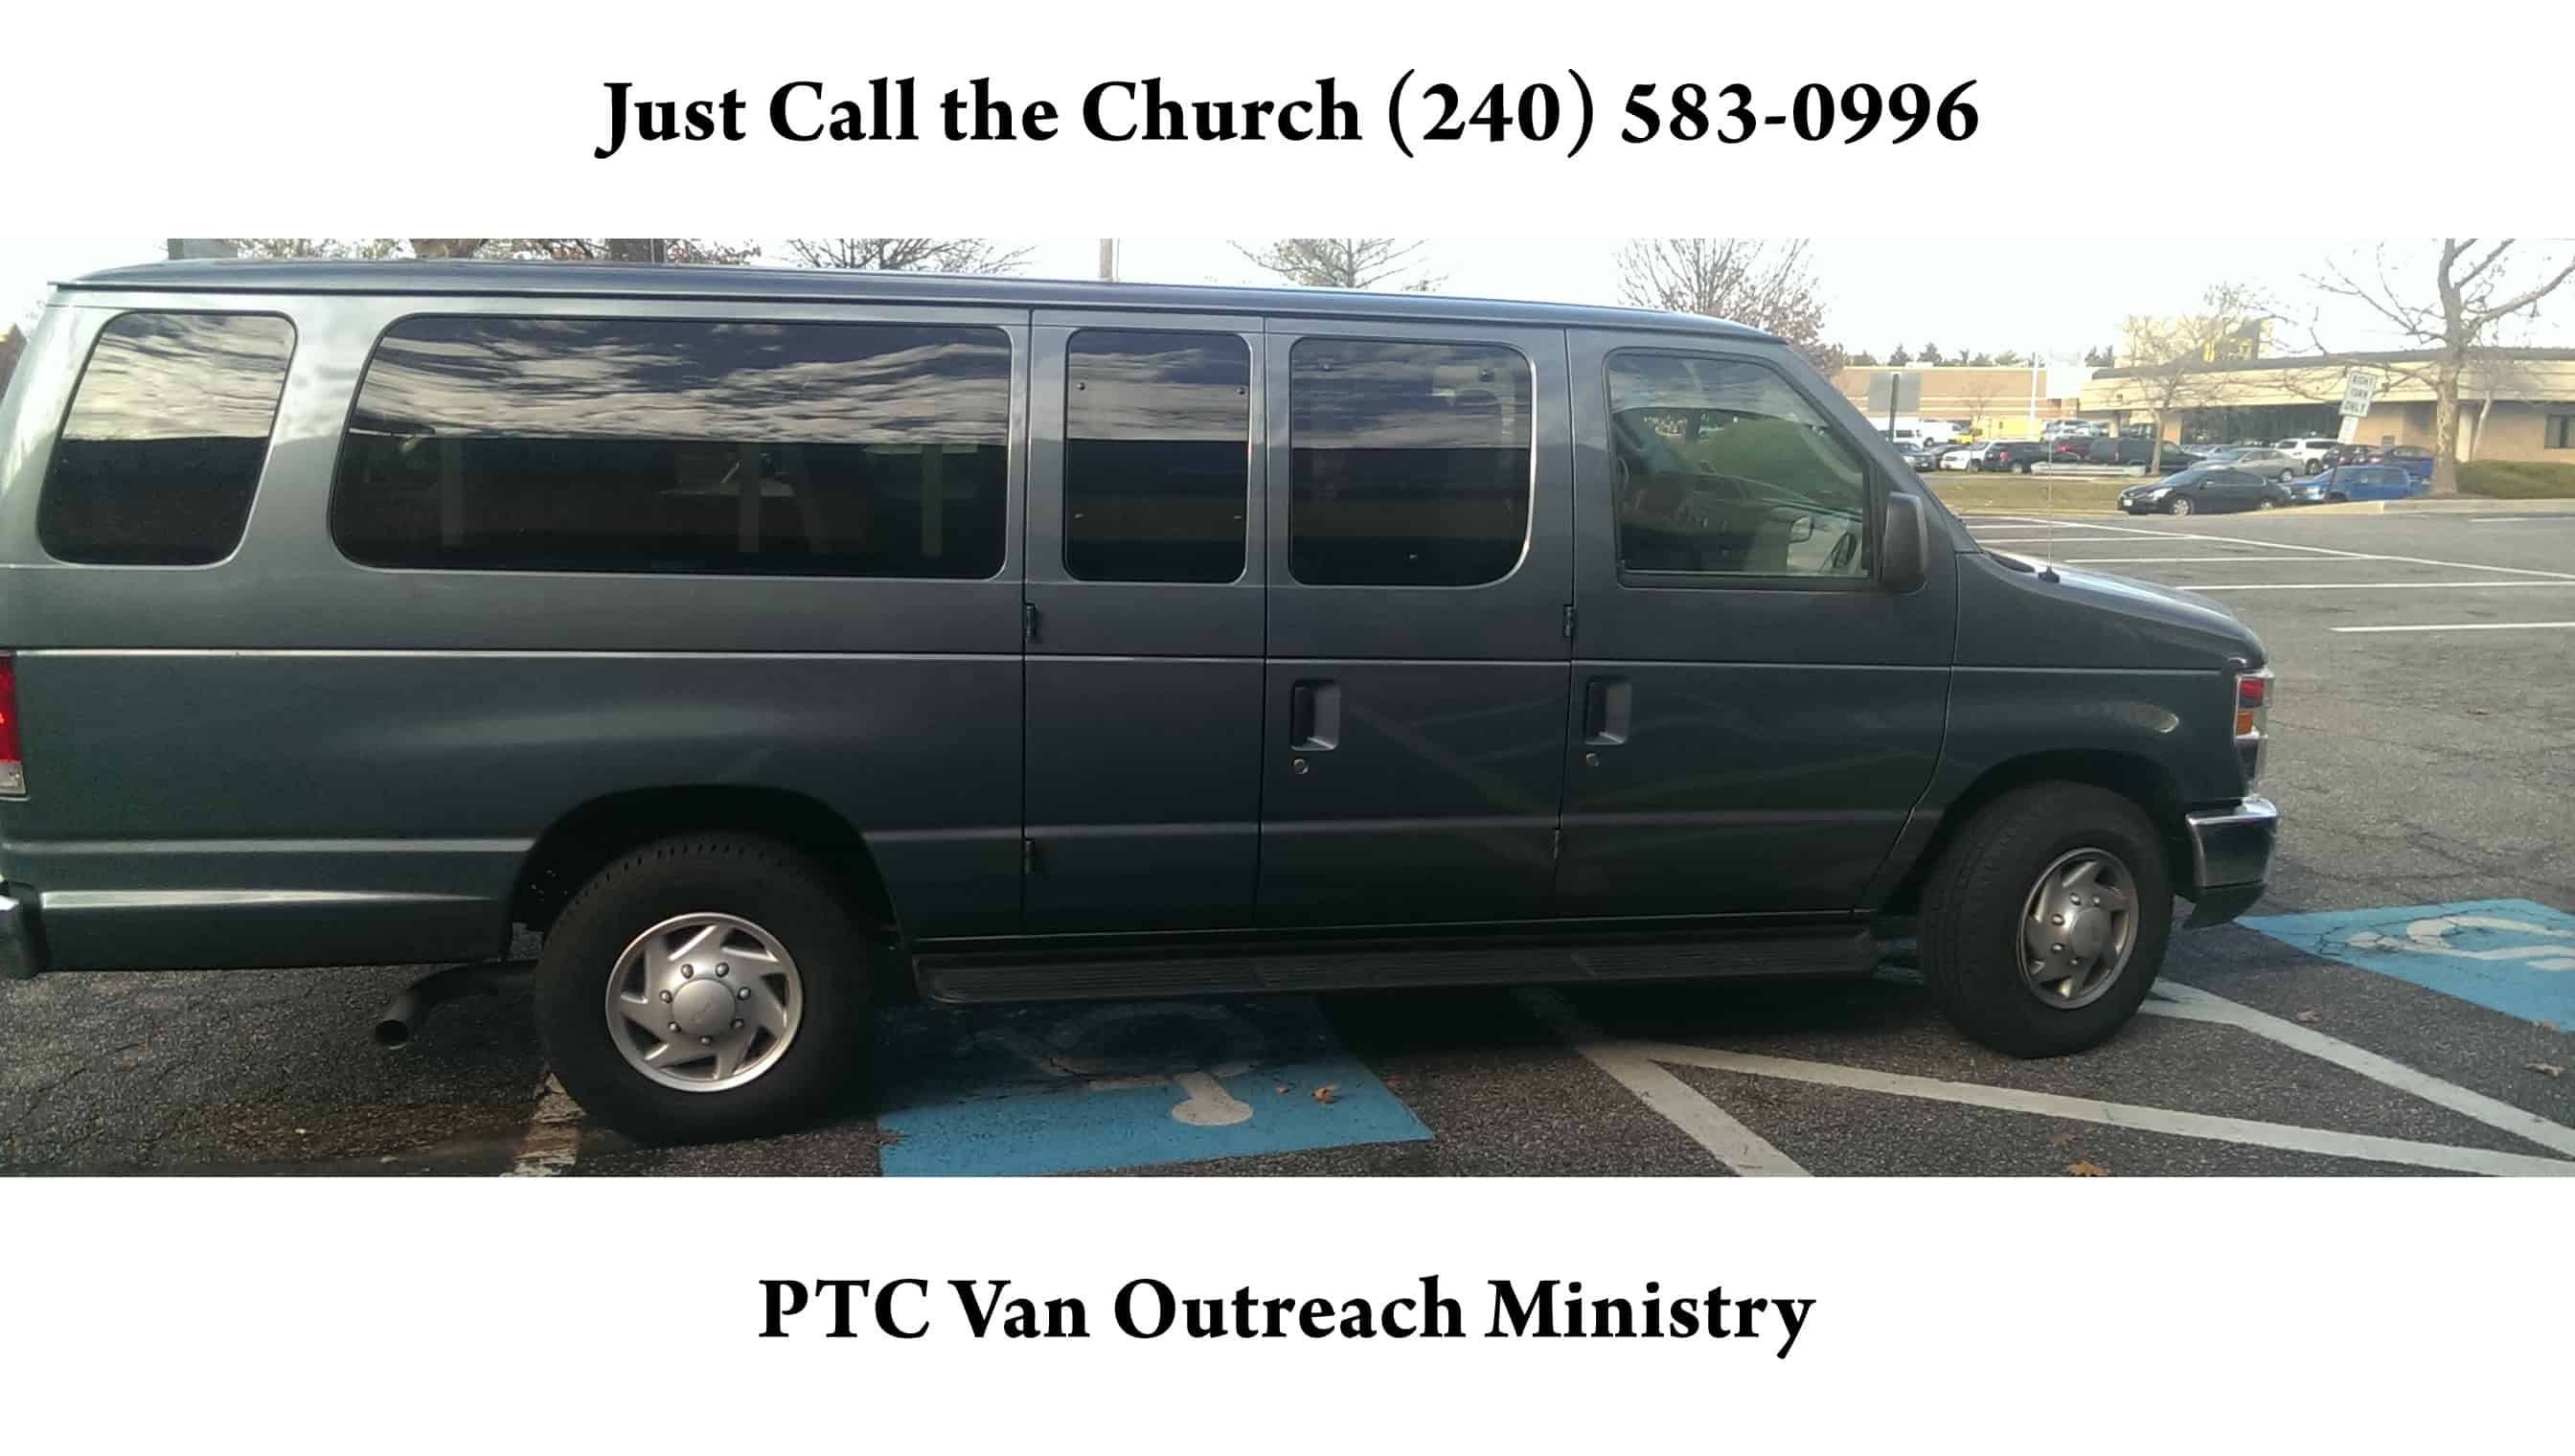 Need a ride? PTC Van Ministry: Call, (240) 583-0996